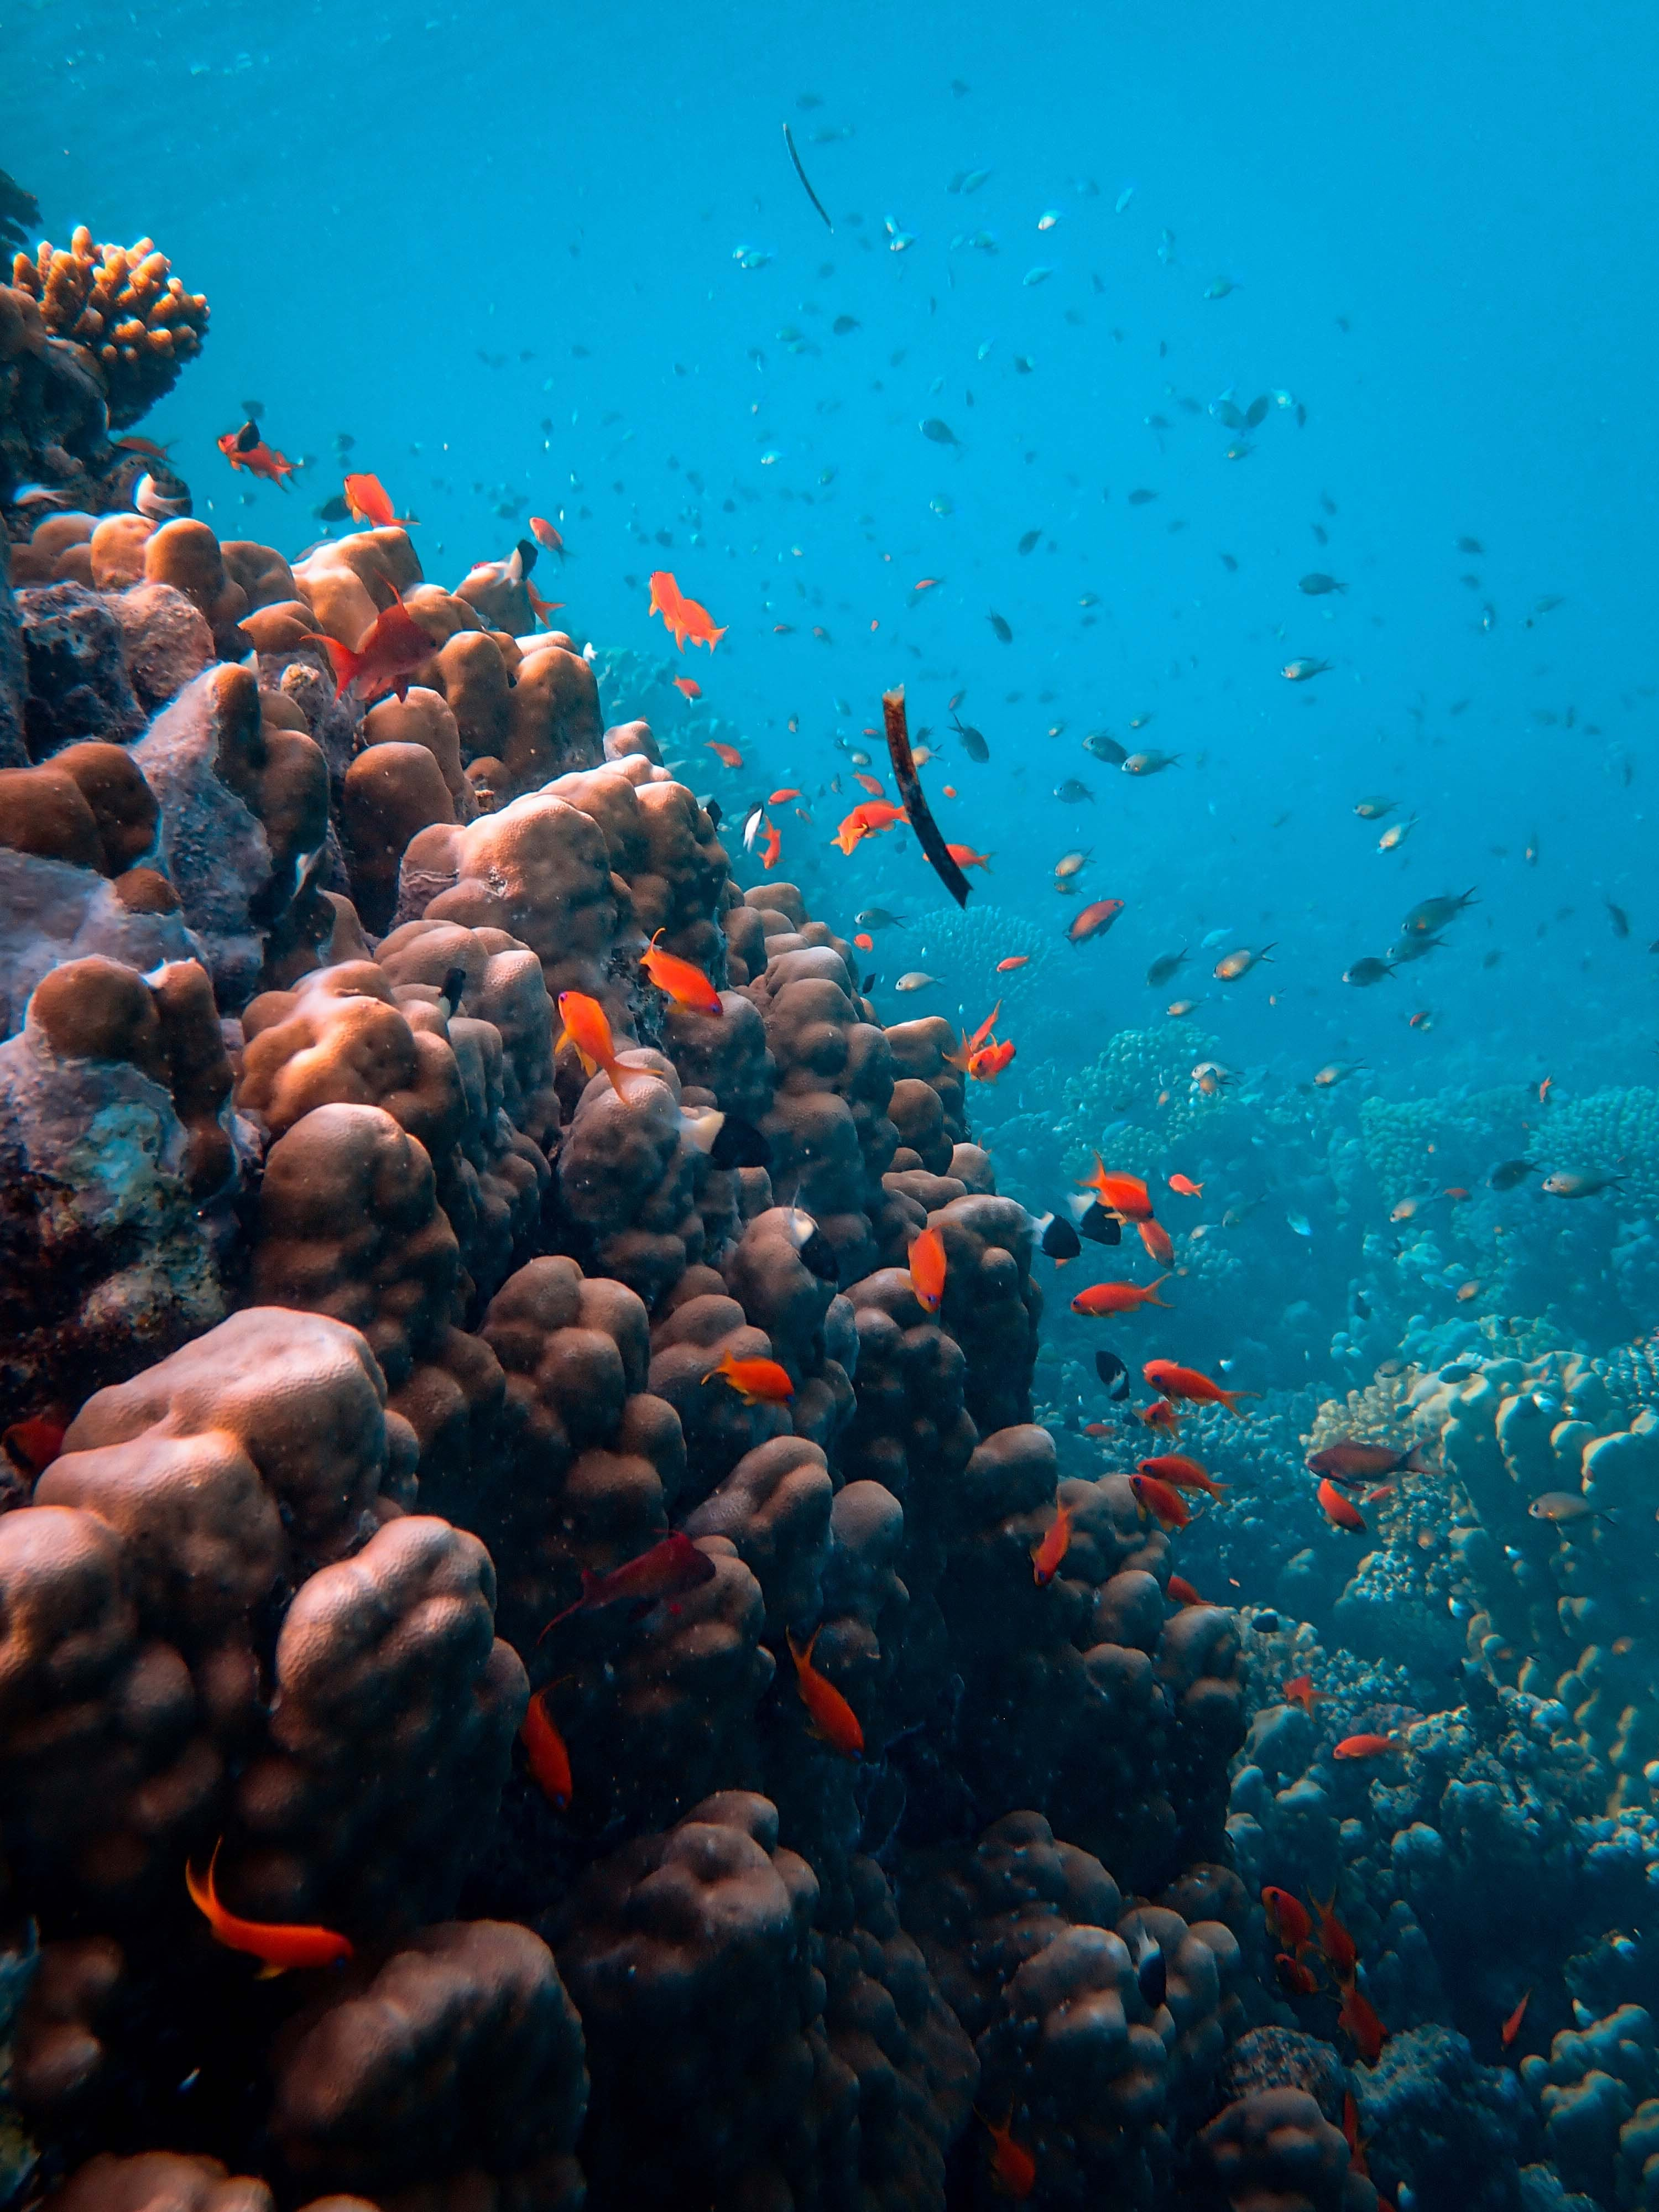 Let Save The Coral Reefs